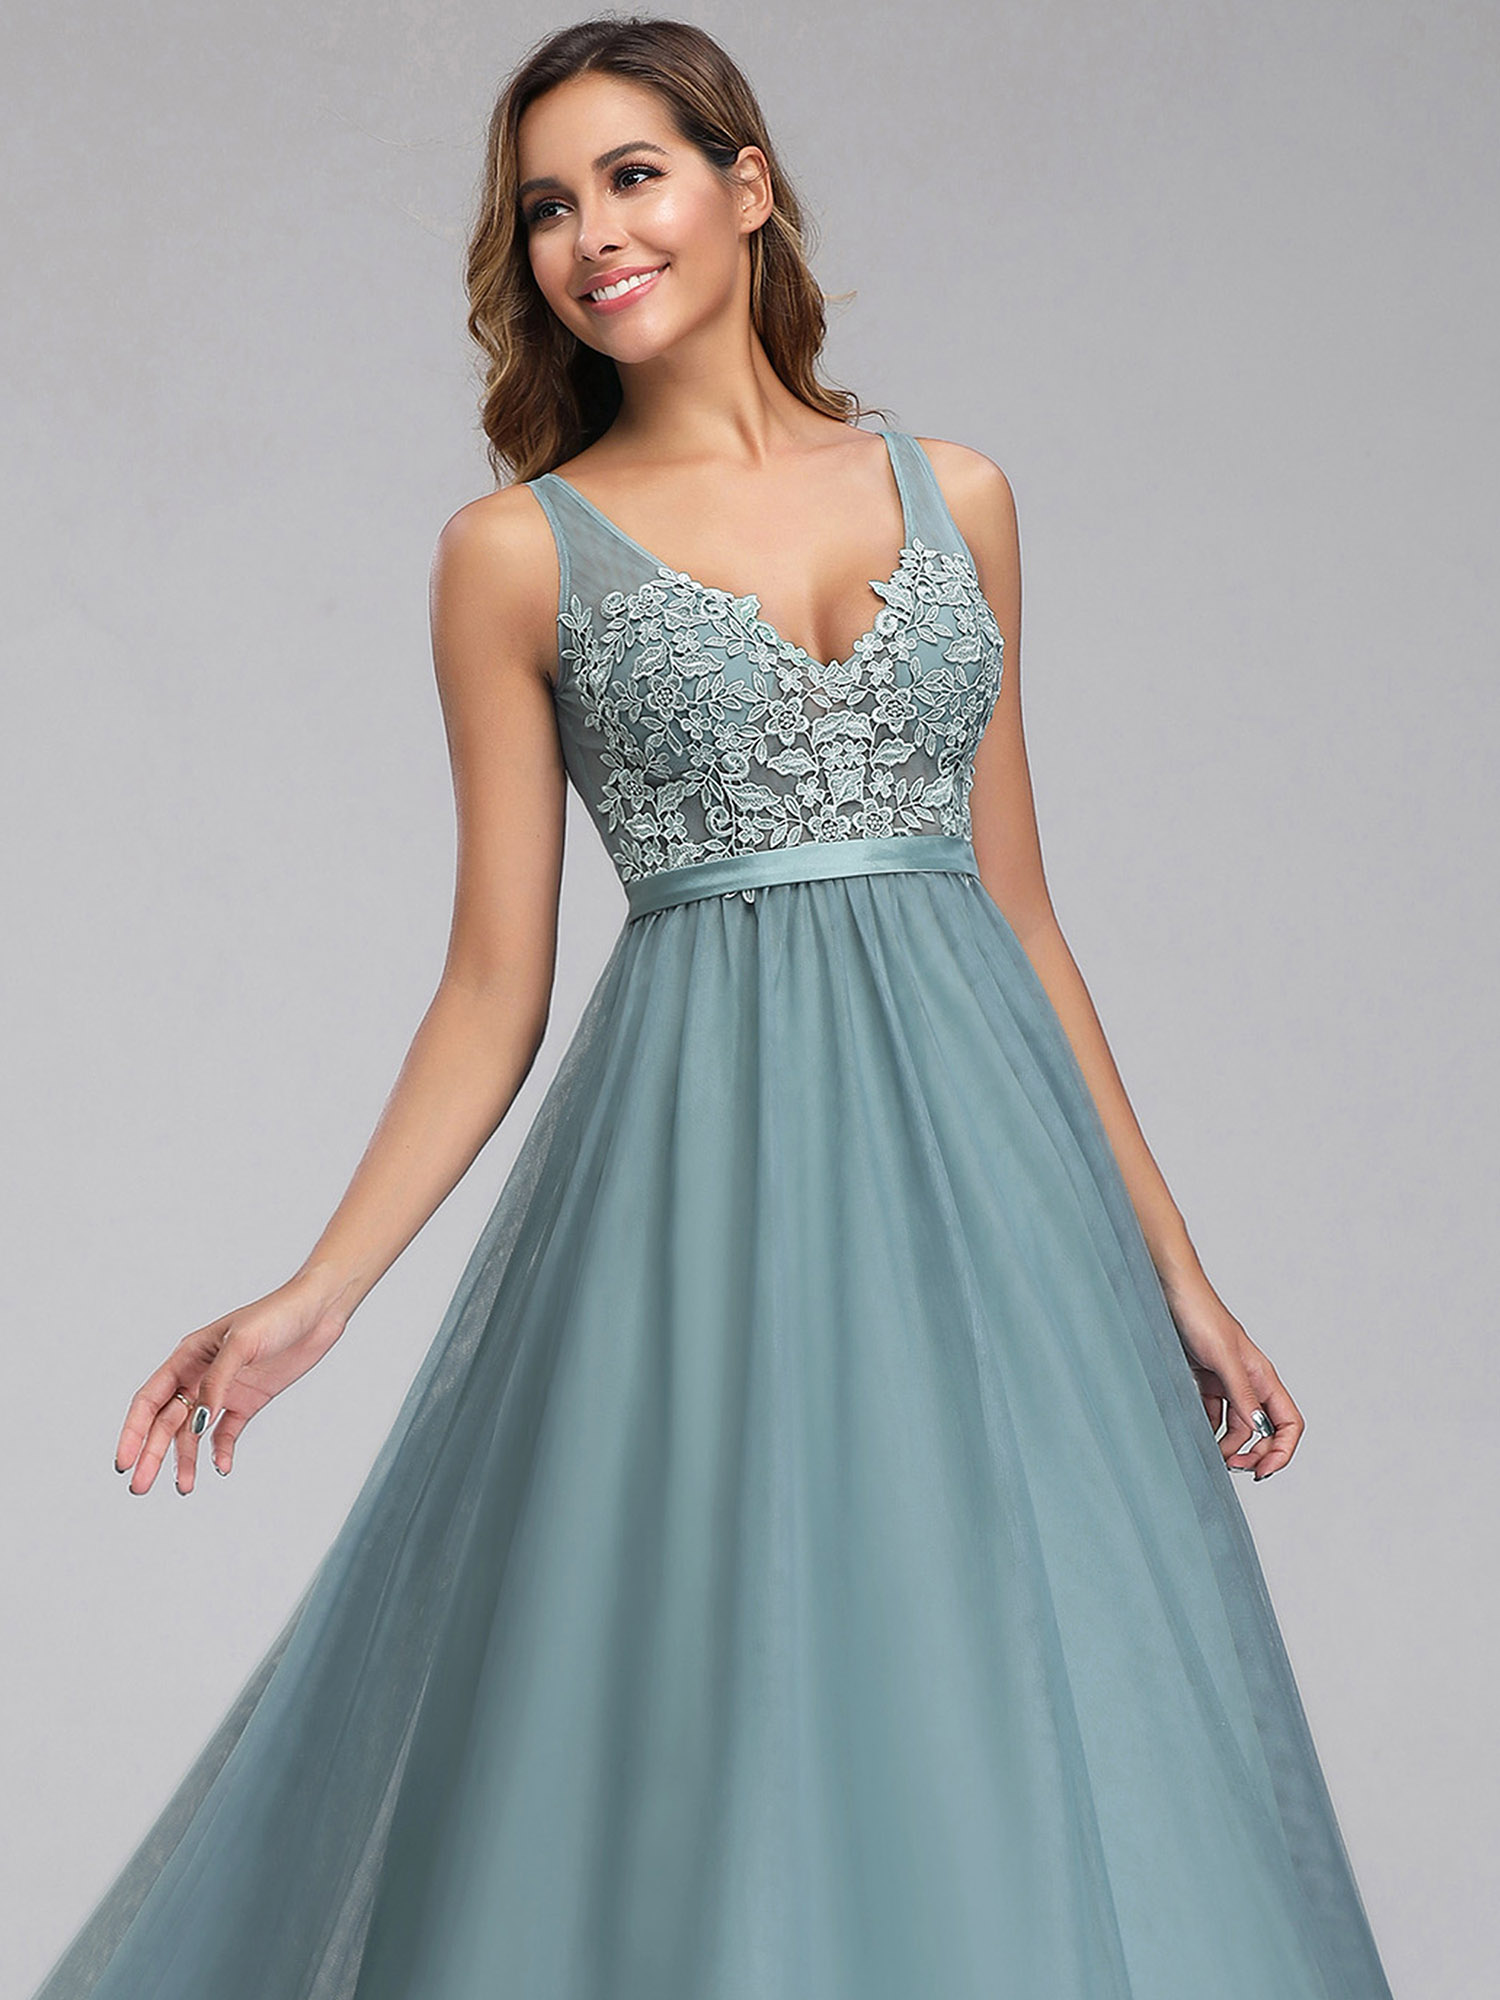 Ever-pretty-Formal-V-neck-Celebrity-Prom-Gown-Long-Evening-A-line-Cocktail-Dress thumbnail 8